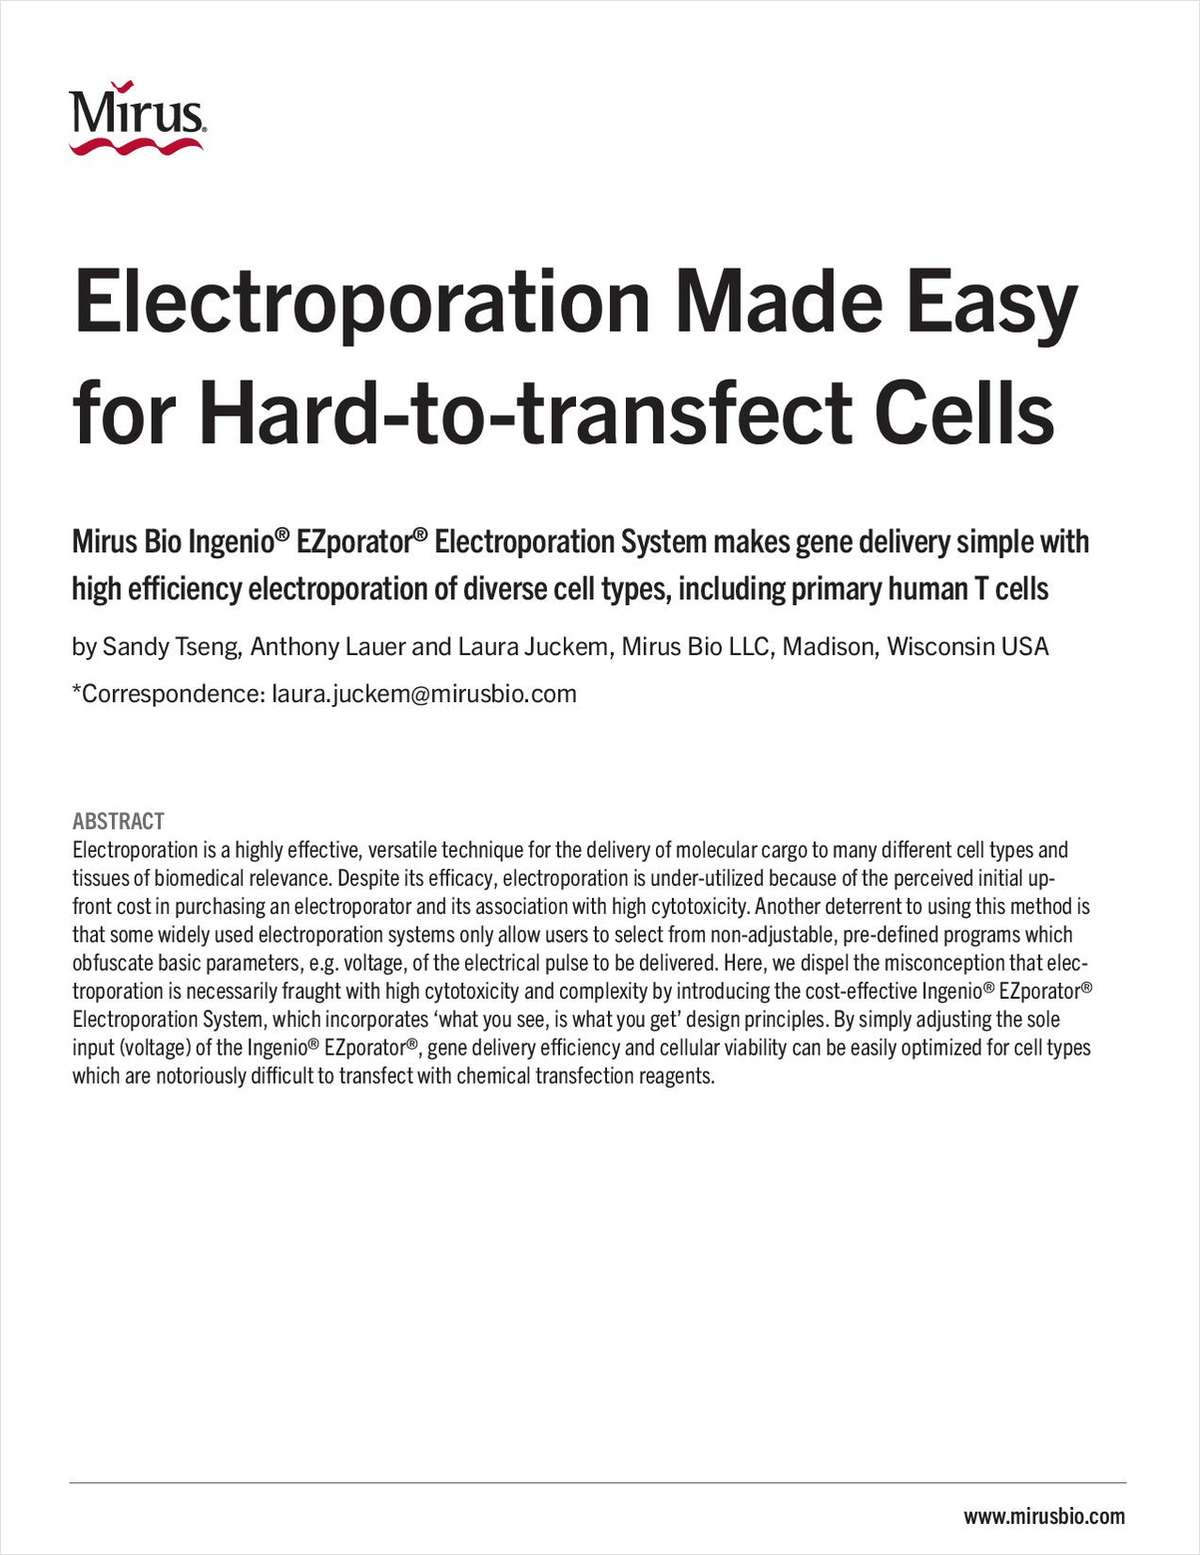 Electroporation Made Easy for Hard-to-Transfect Cells